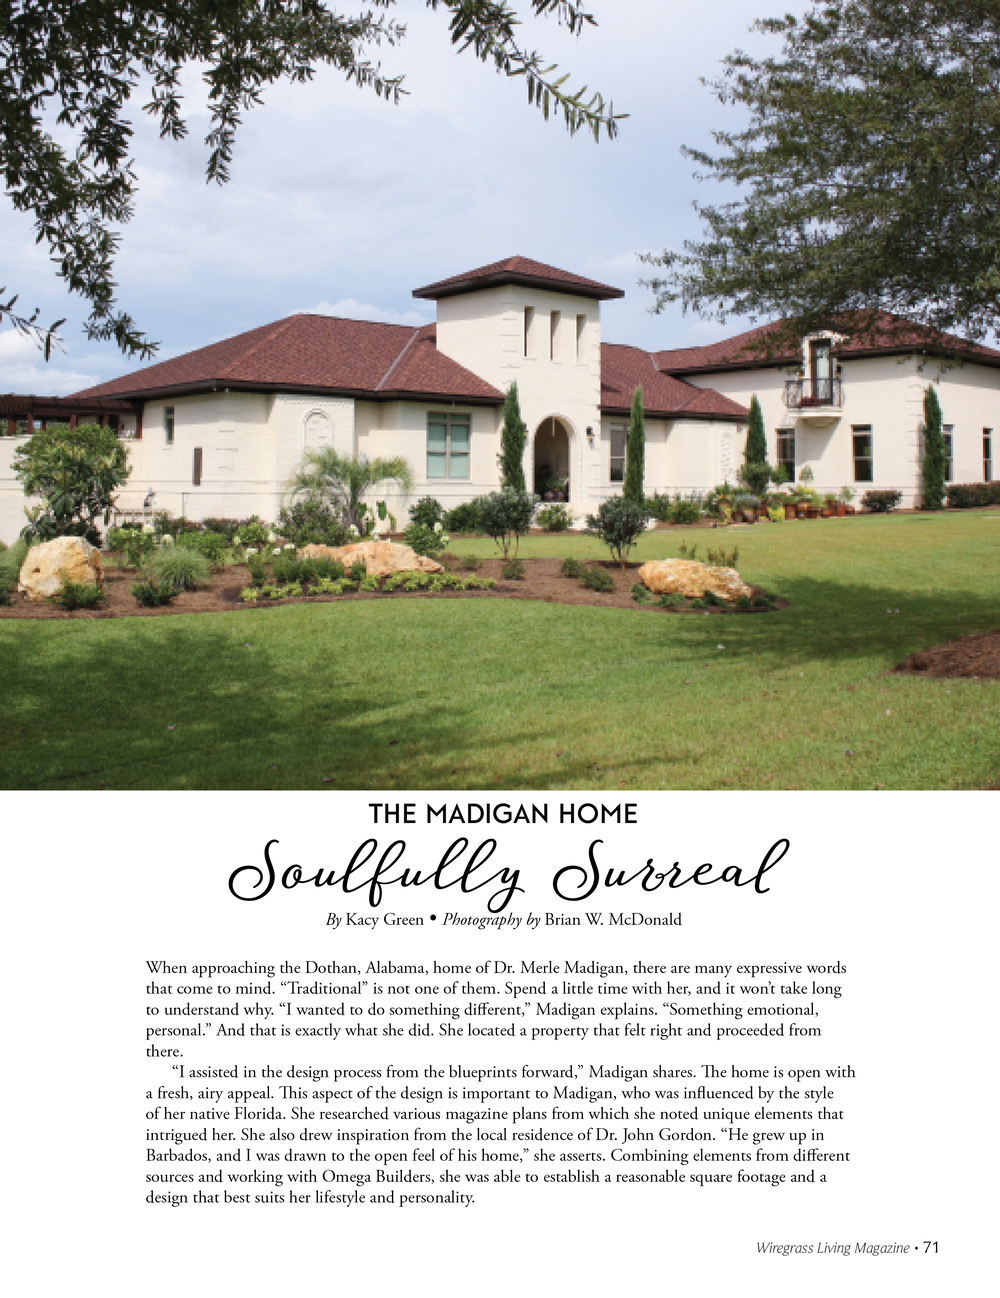 The Madigan Home, by Wiregrass Living Magazine